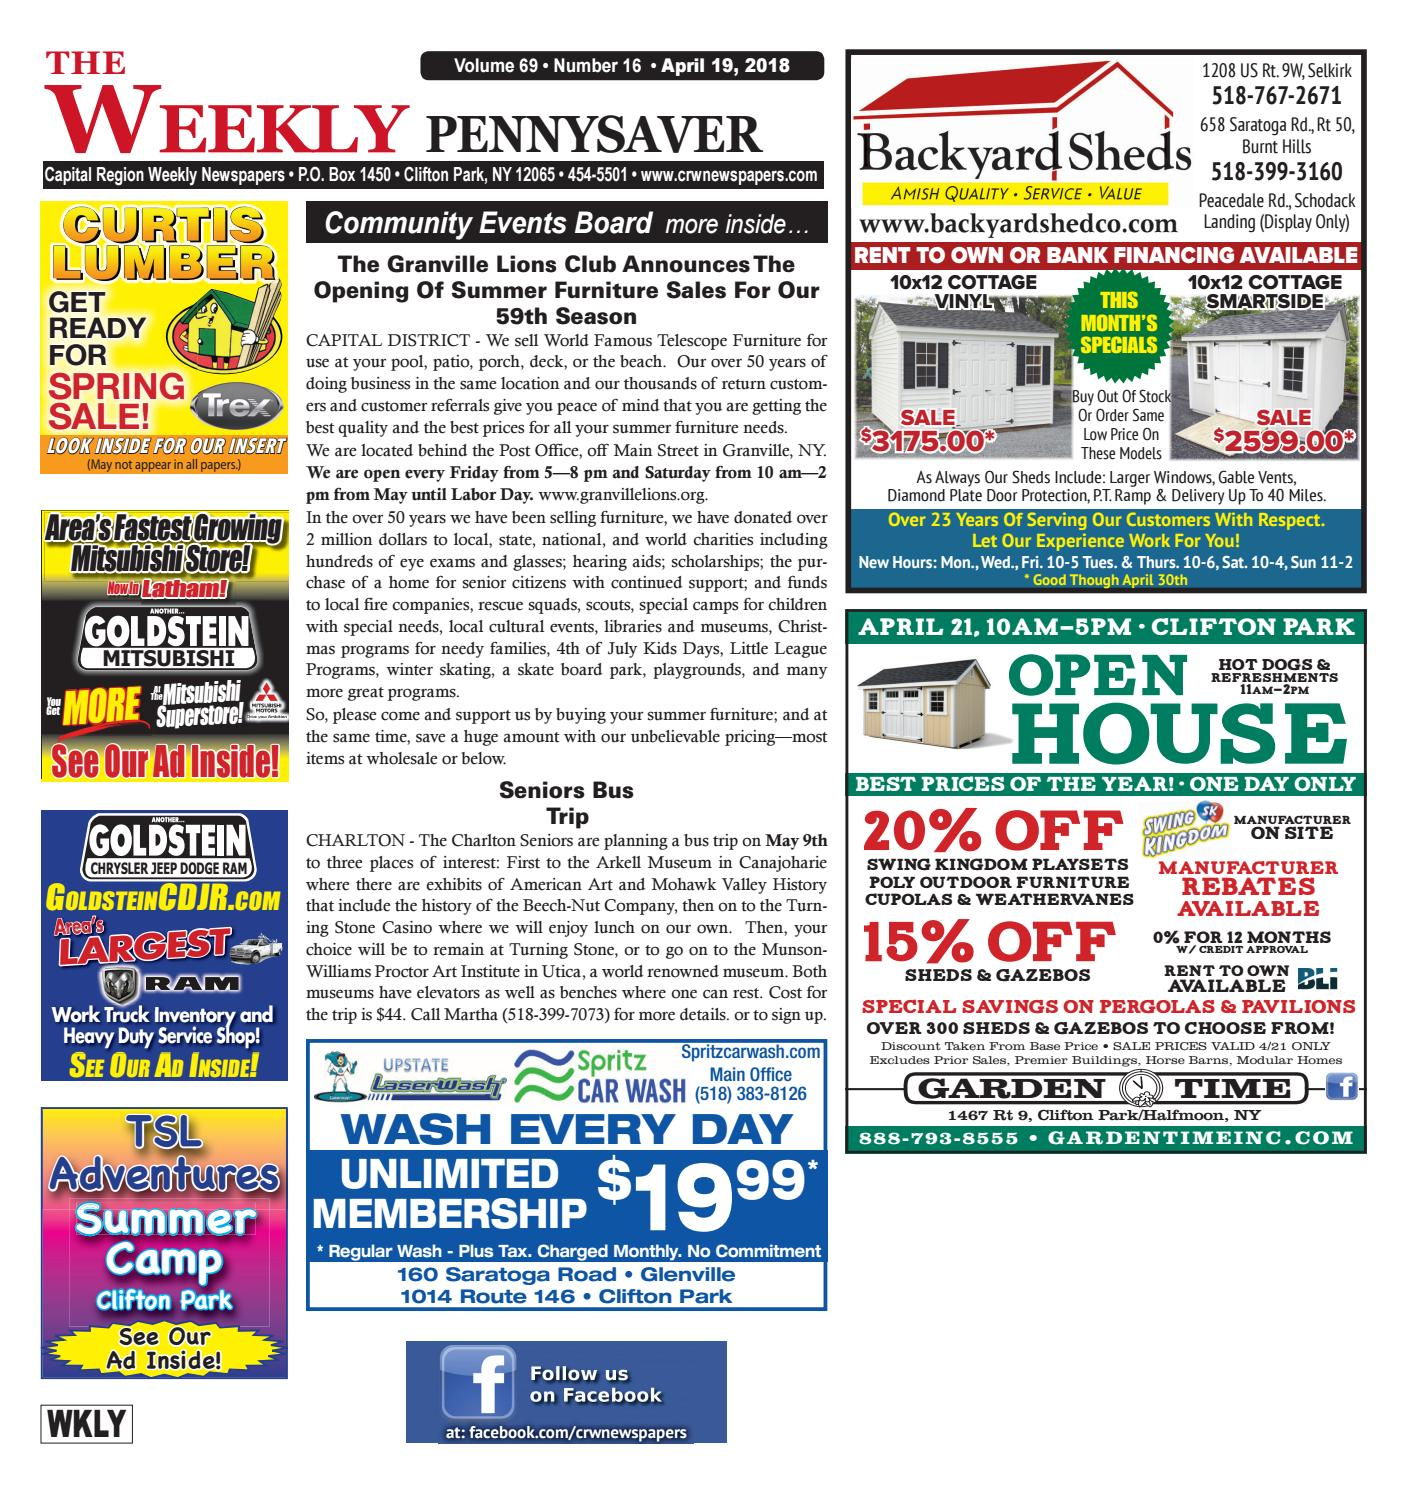 The Weekly Pennysaver 041918 by Capital Region Weekly